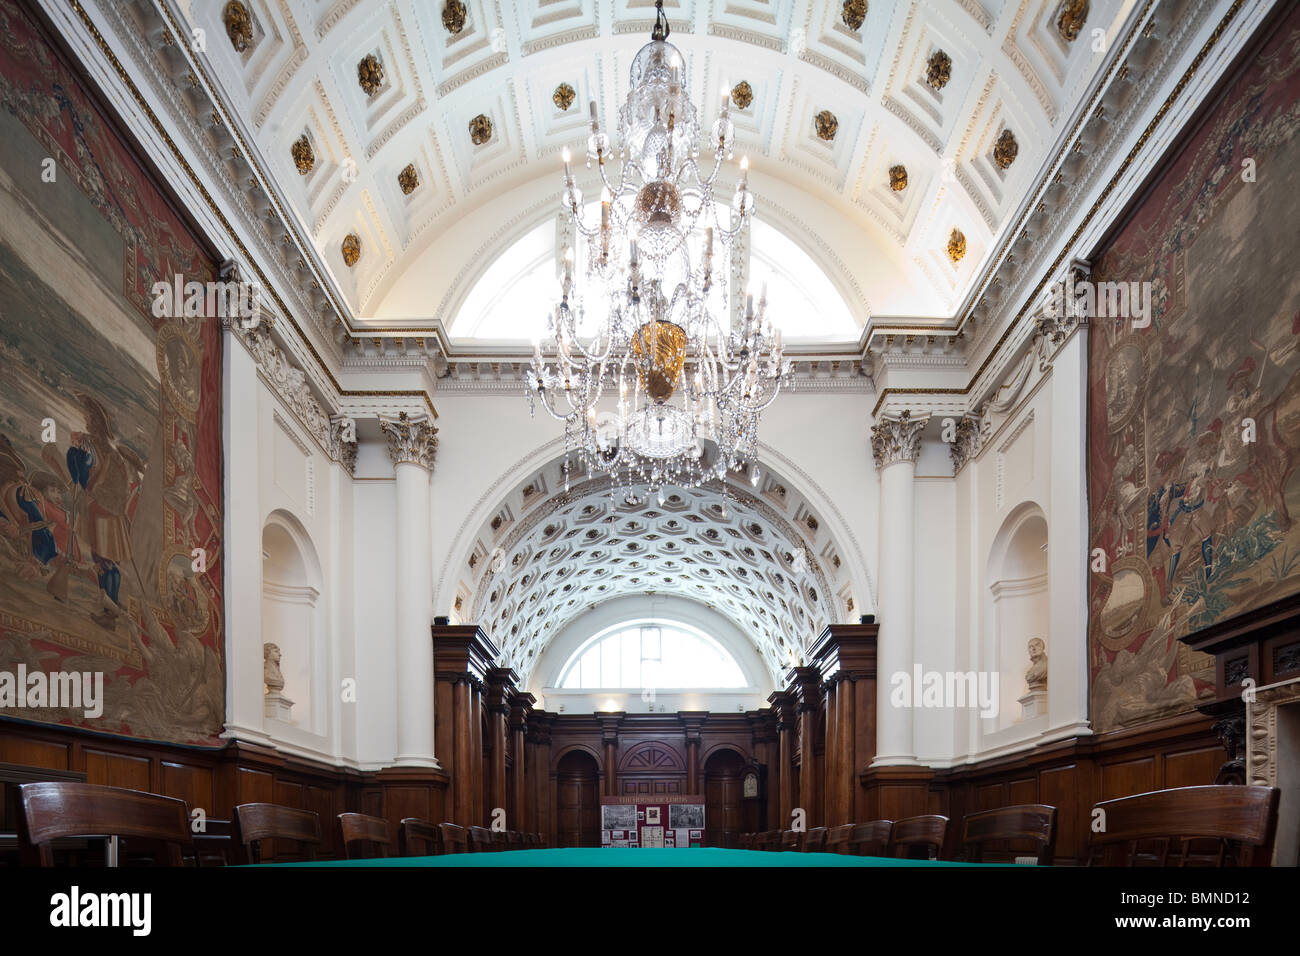 The Irish House Of Lords Chamber, Formerly In The Irish Houses Of Parliament,  Now Bank Of Ireland, Dublin